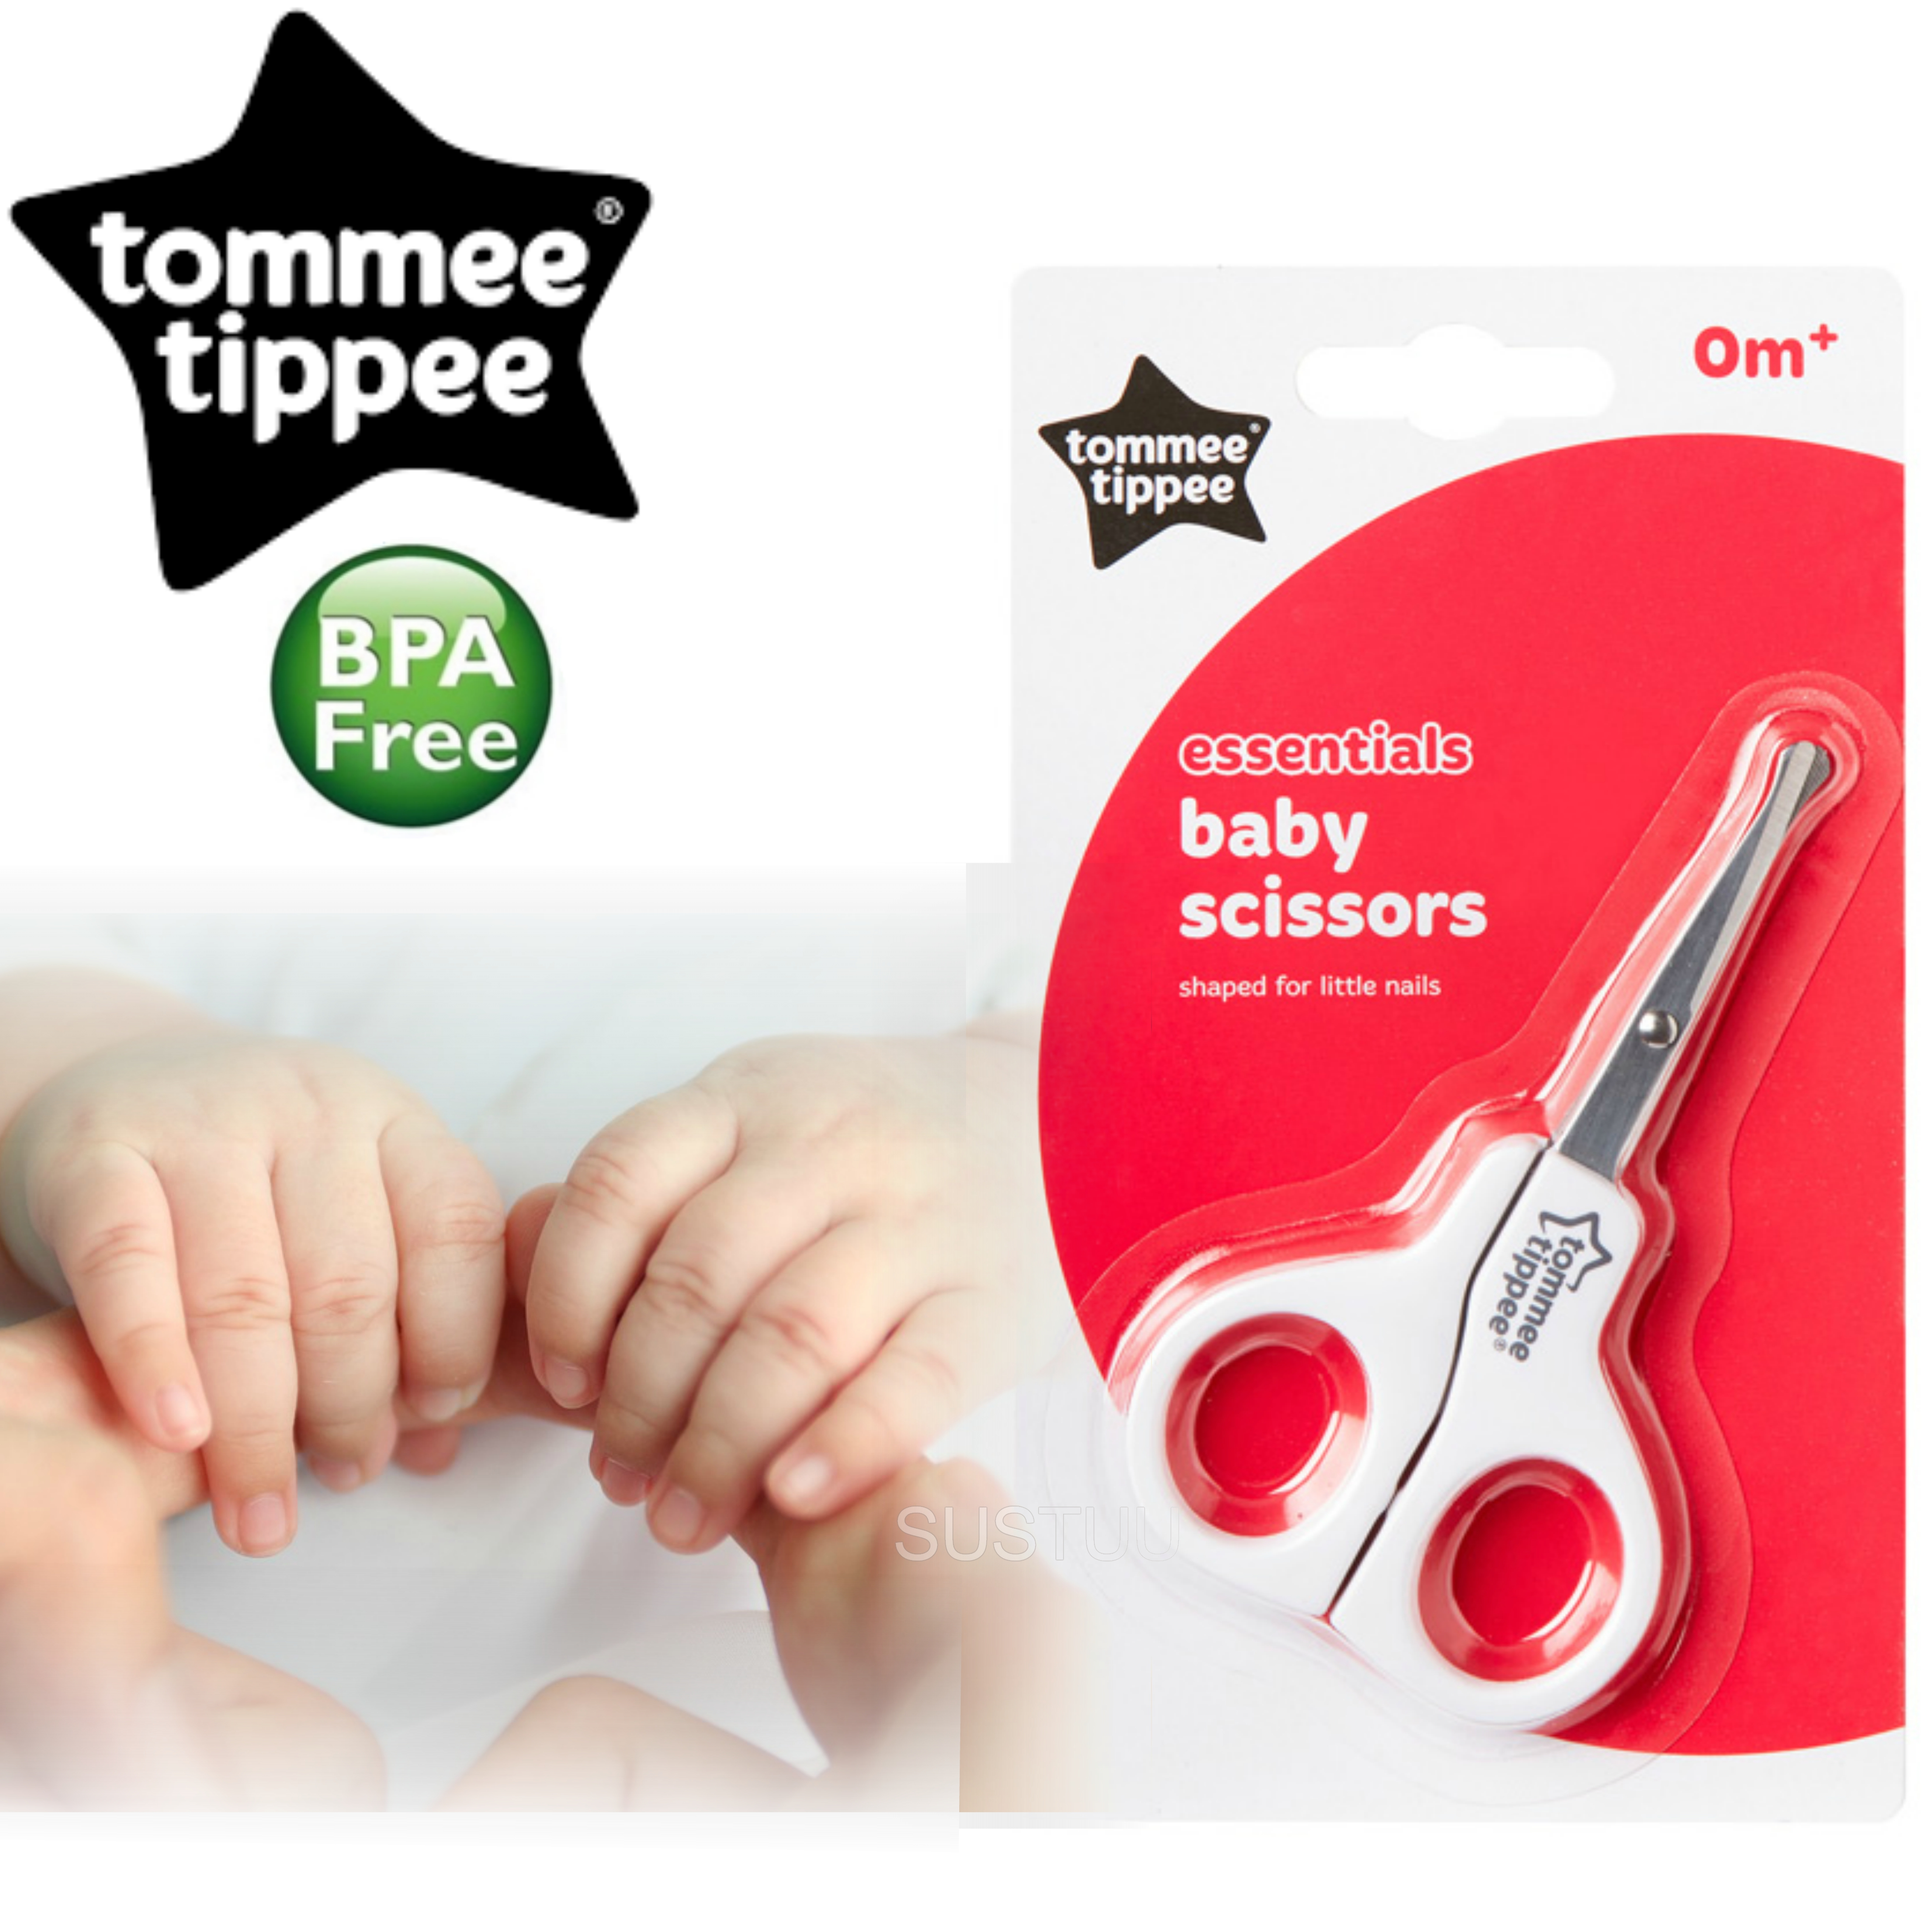 Tommee Tippee Essentials Basics Baby Nail Scissors | Designed For Little Nails-0m+